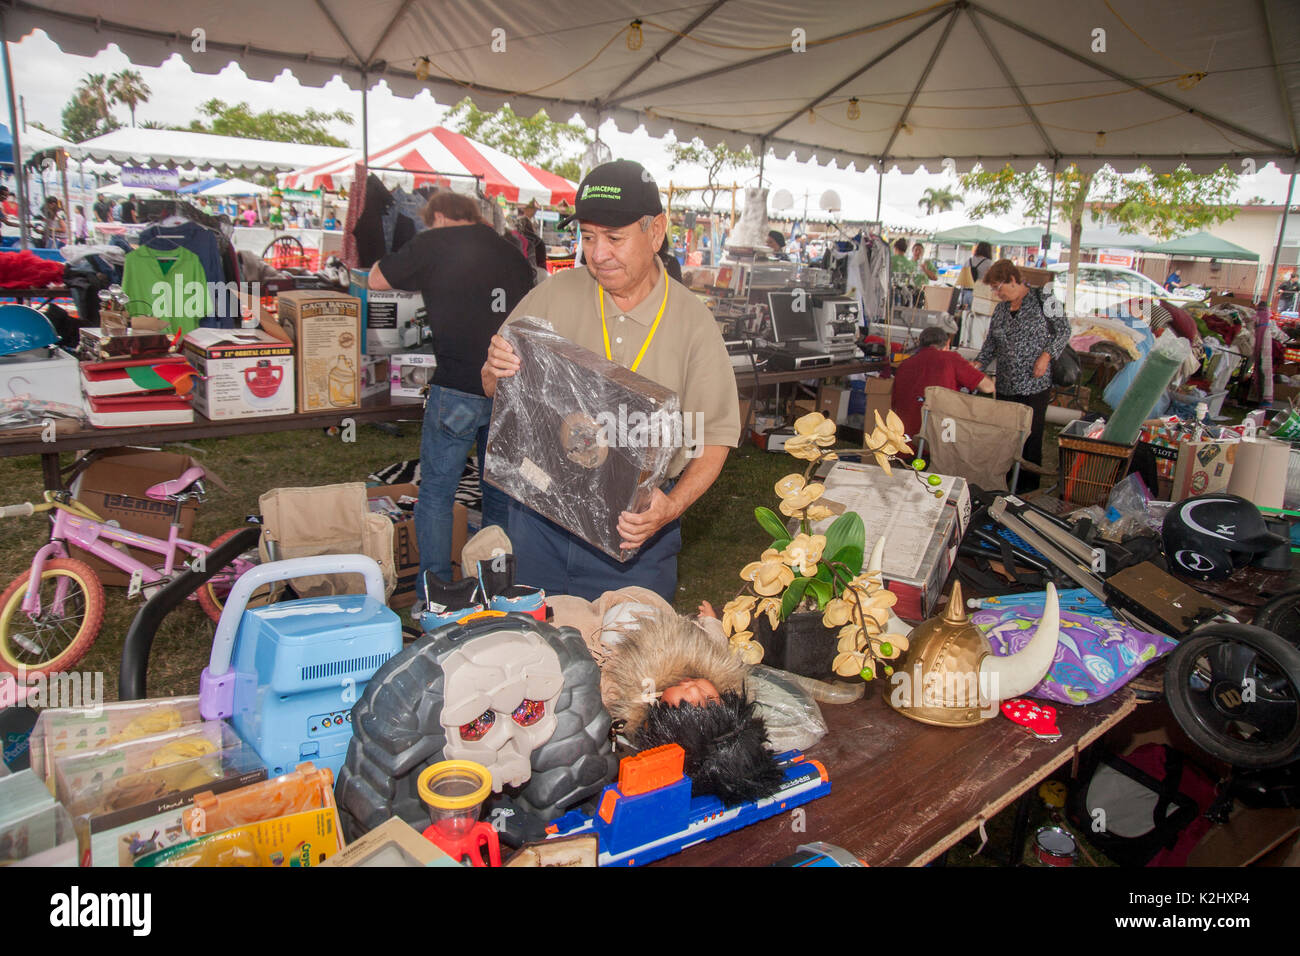 A Hispanic proprietor organizes  an amusement park rummage sale in Costa Mesa, CA. Note variety of objects offered for sale. - Stock Image